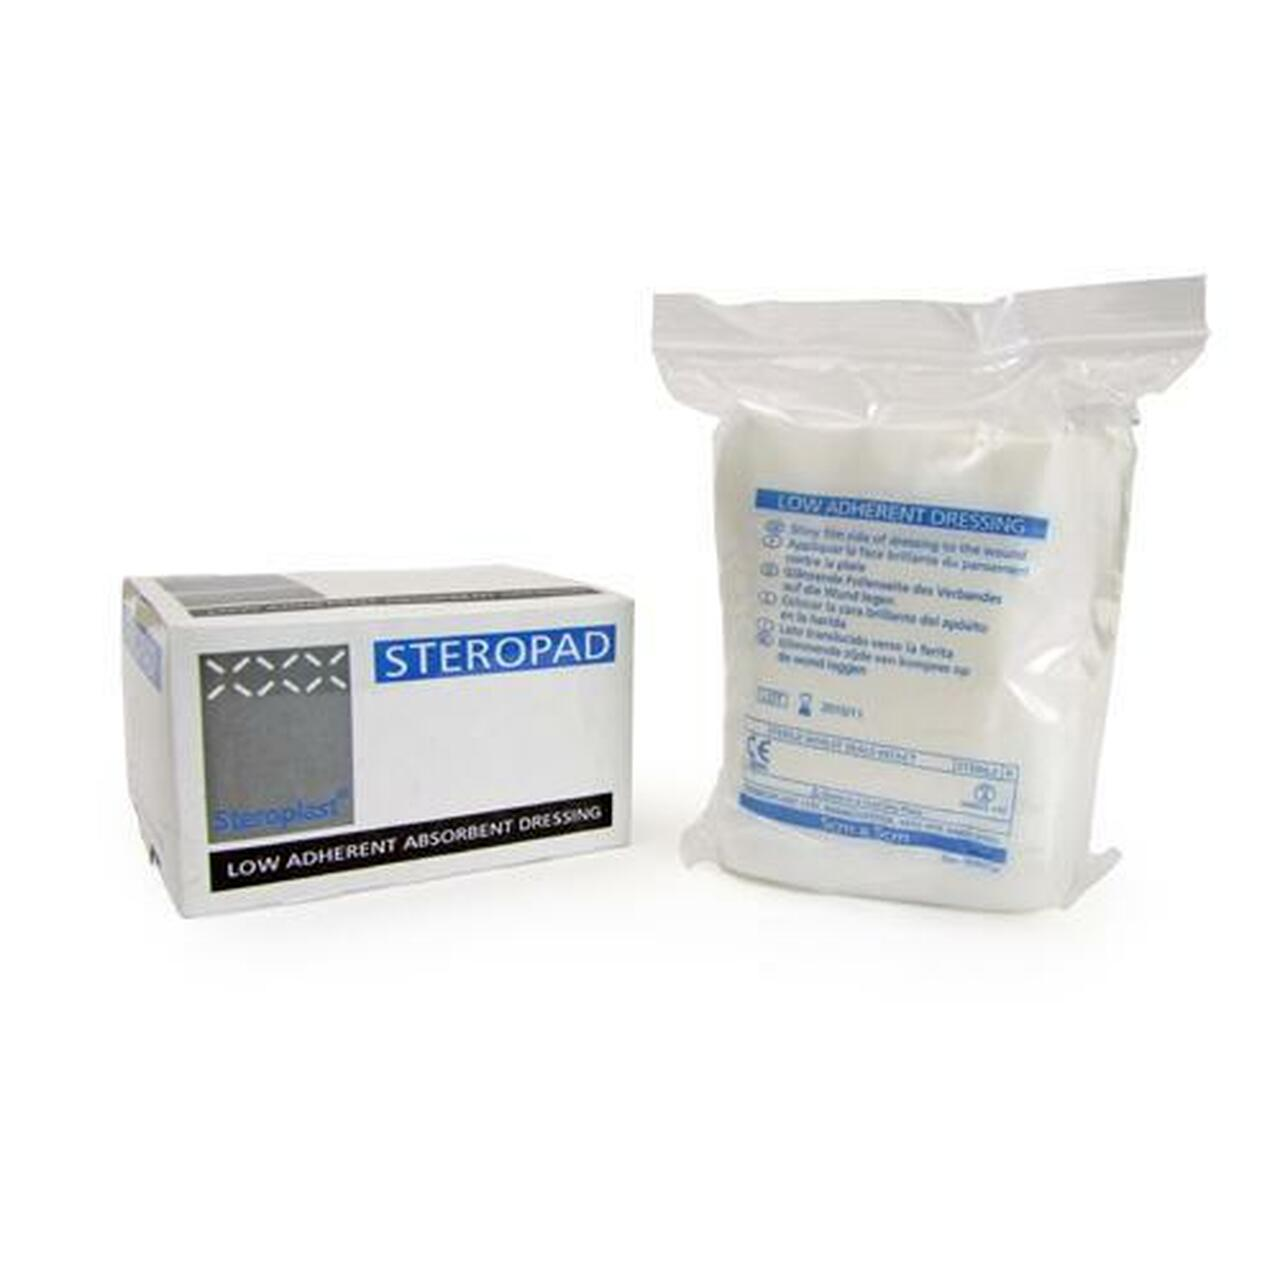 Steropad Absorbent Dressing